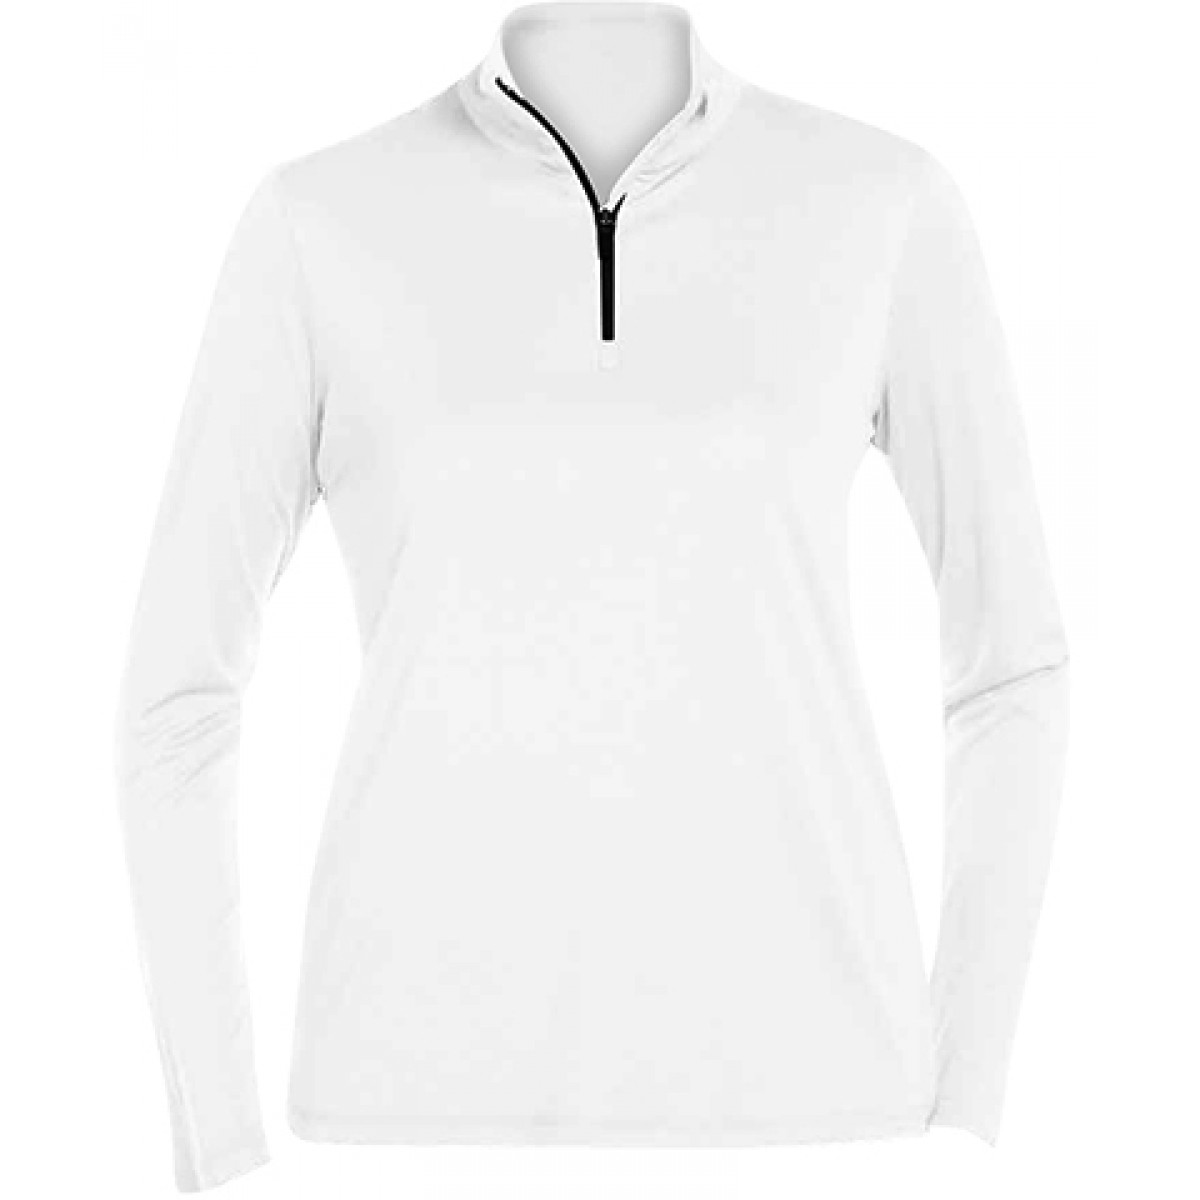 Ladies Quarter-Zip Lightweight Pull Over -White-S